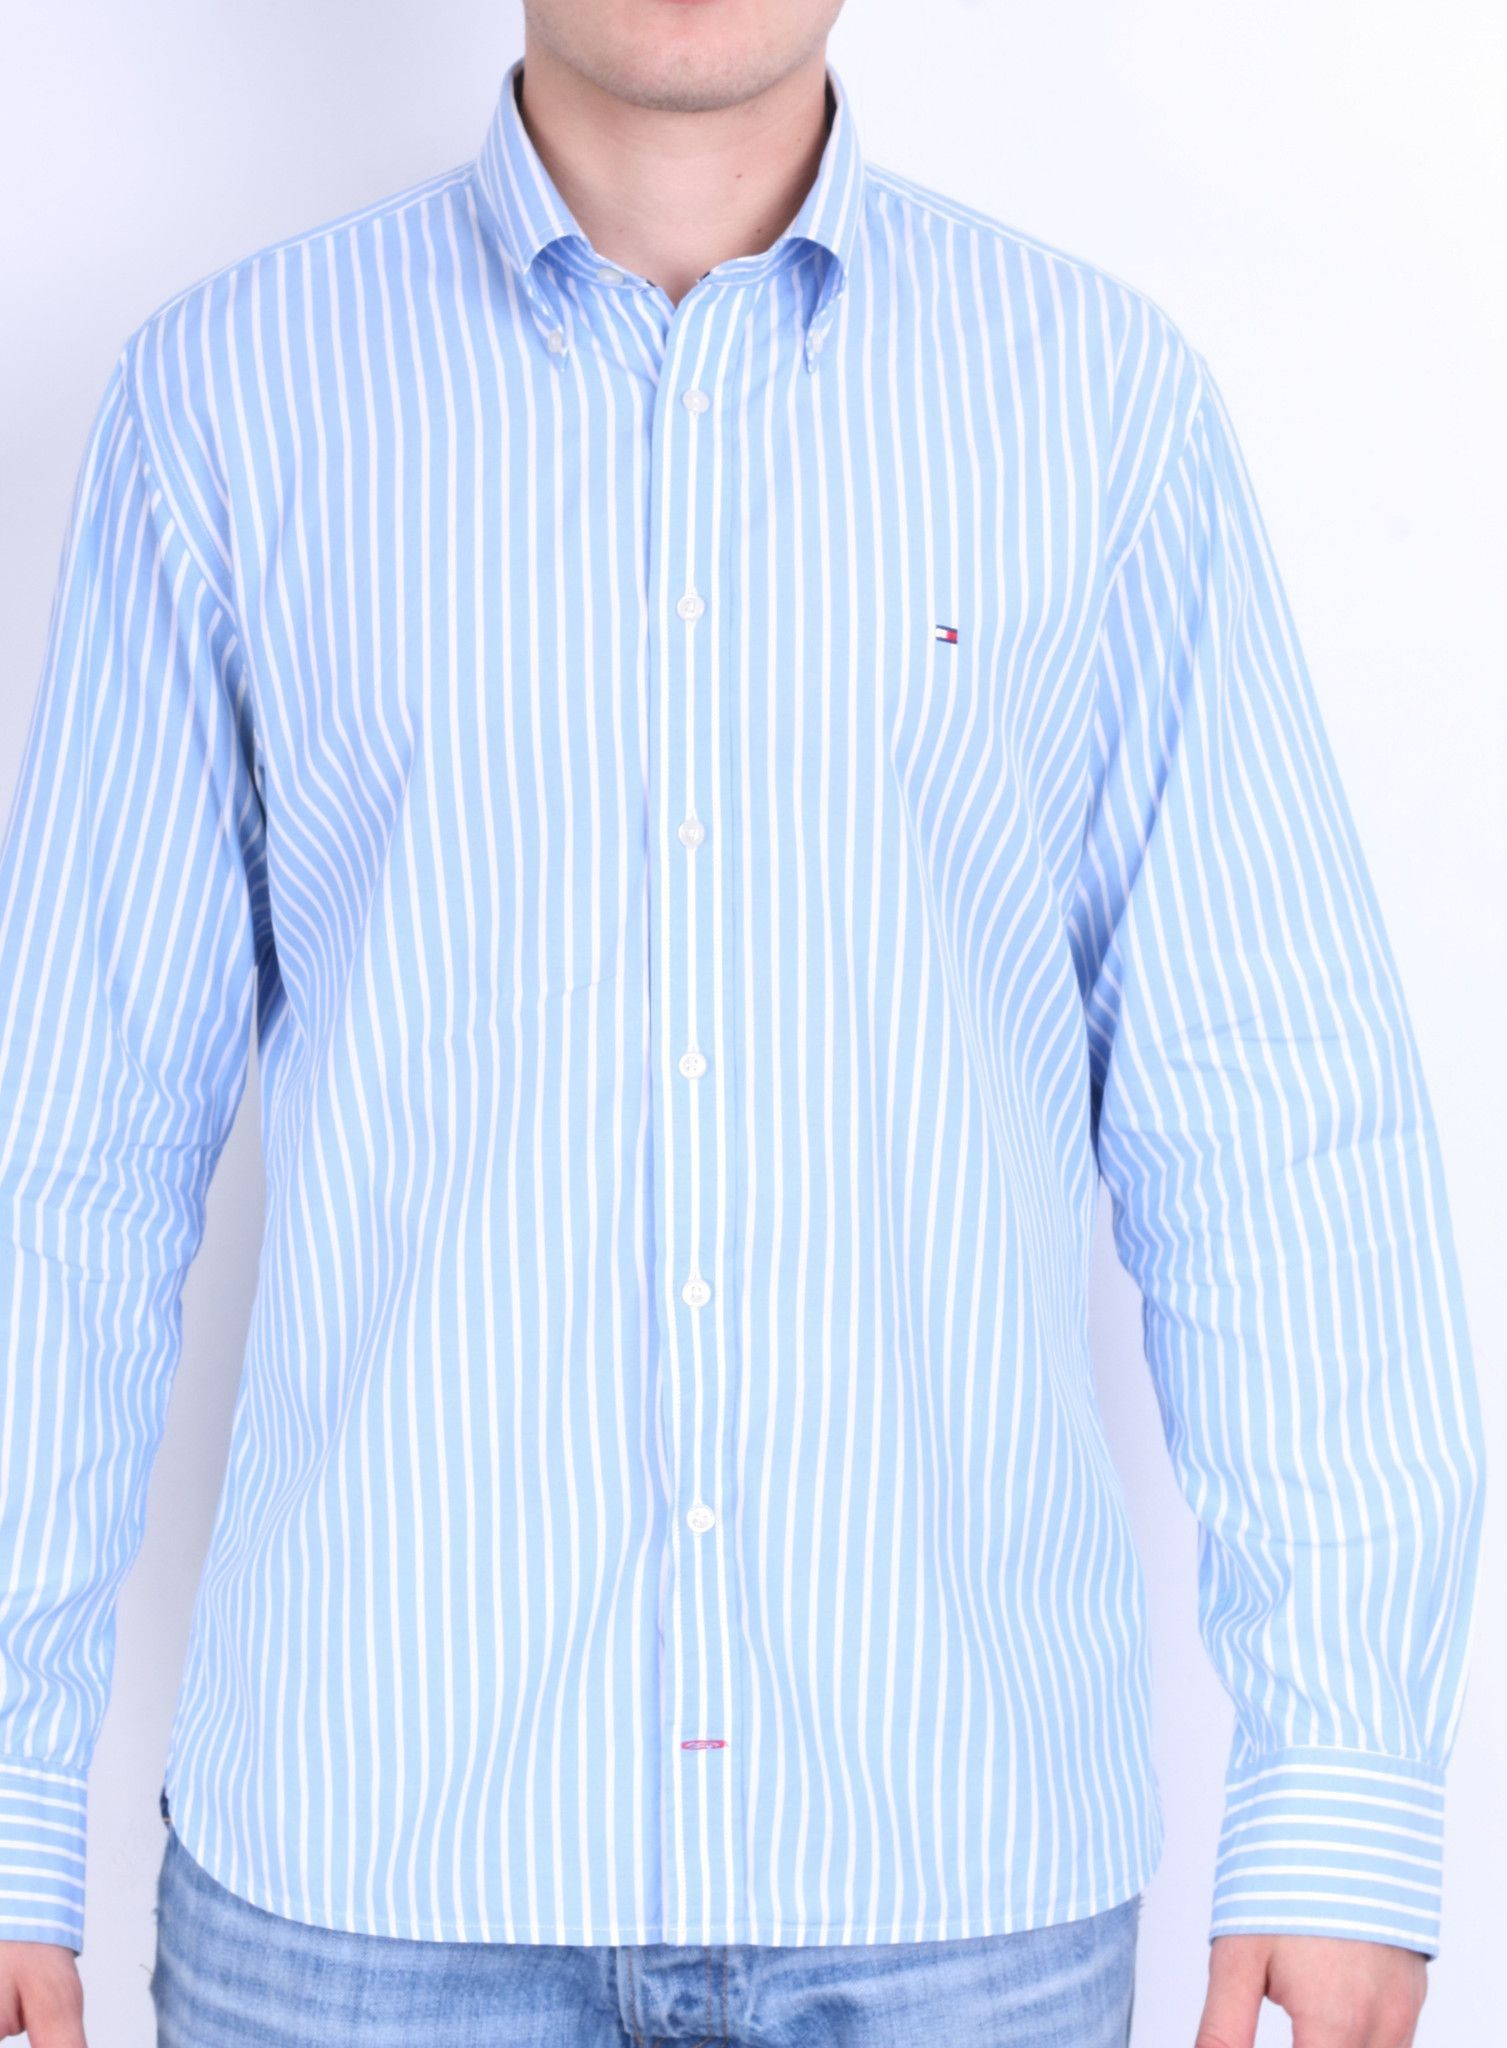 033f58600 Tommy Hilfiger Mens L Casual Shirt Striped Blue 80s Two Ply Cotton ...